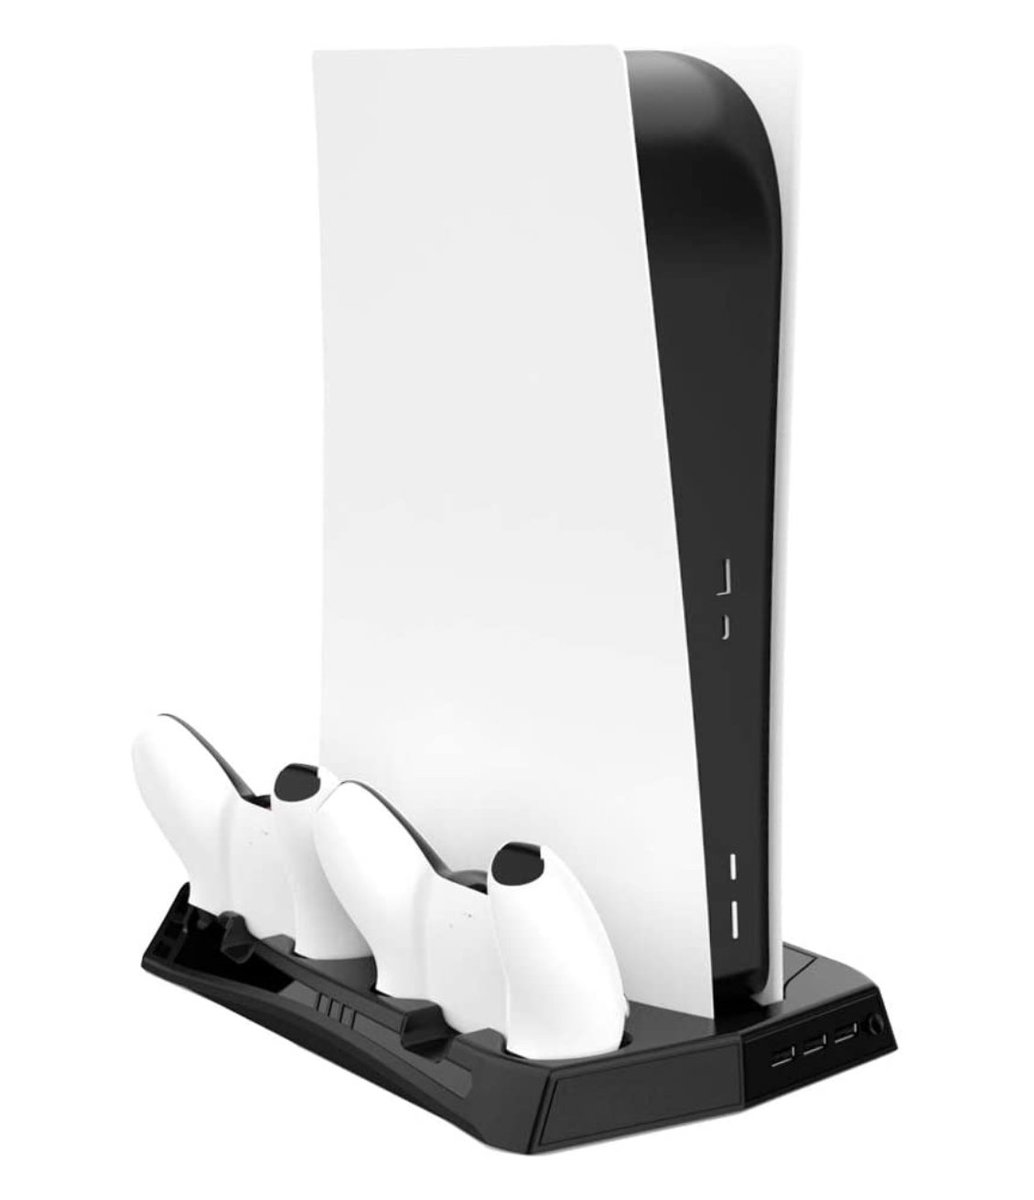 PS5 Vertical Stand by Connyam  Amazon $18.99